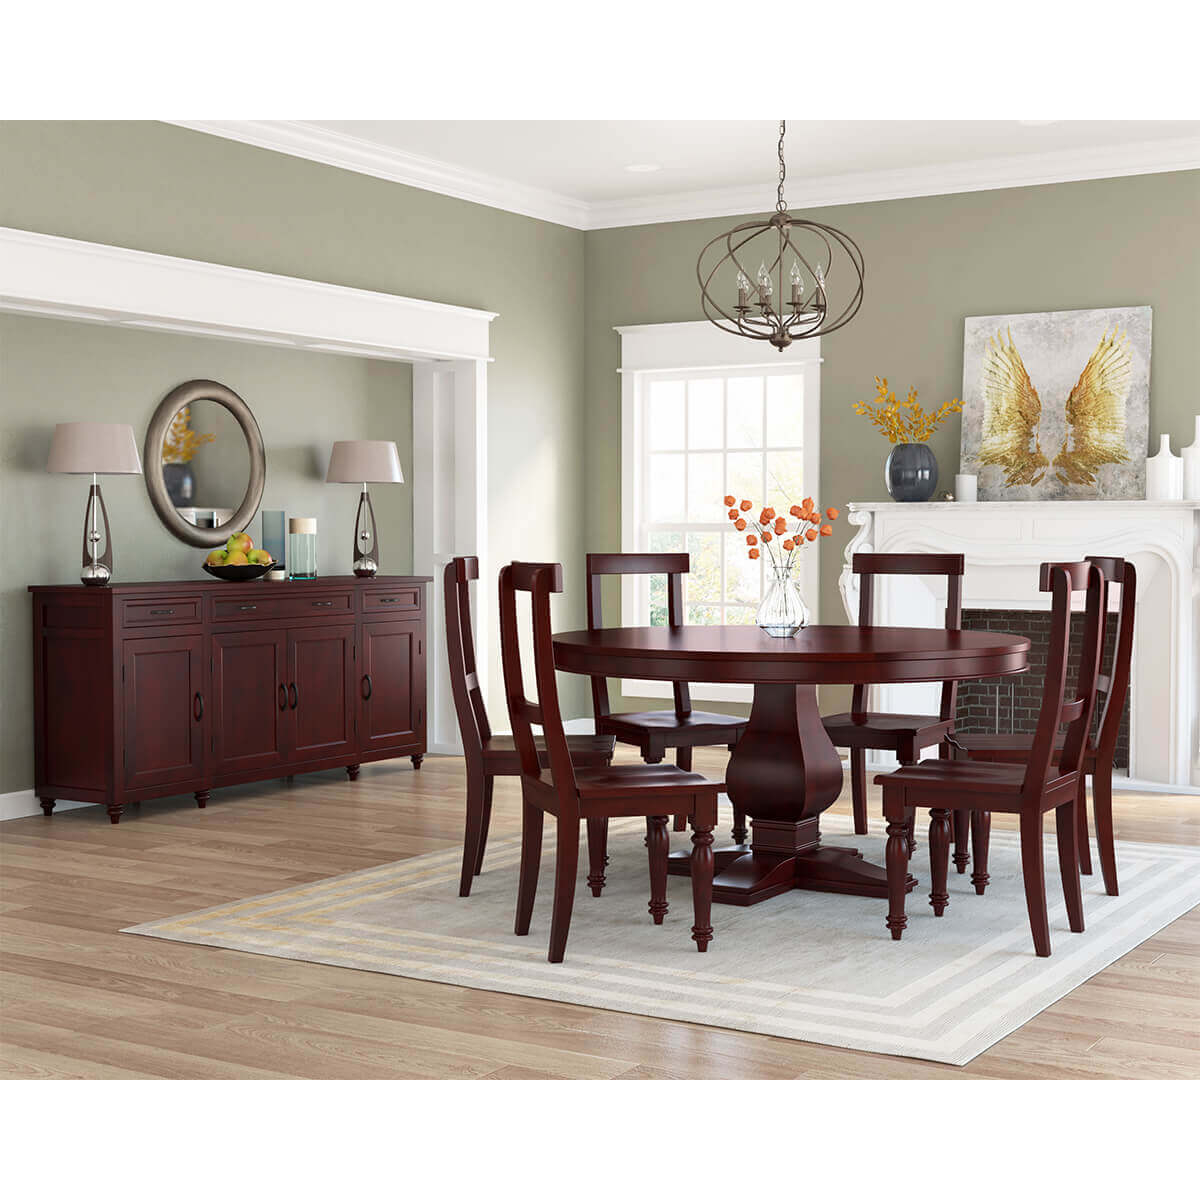 Arenzville Solid Mahogany Wood 8 Piece Dining Room Set pertaining to 15 Clever Ways How to Build 8 Piece Living Room Set